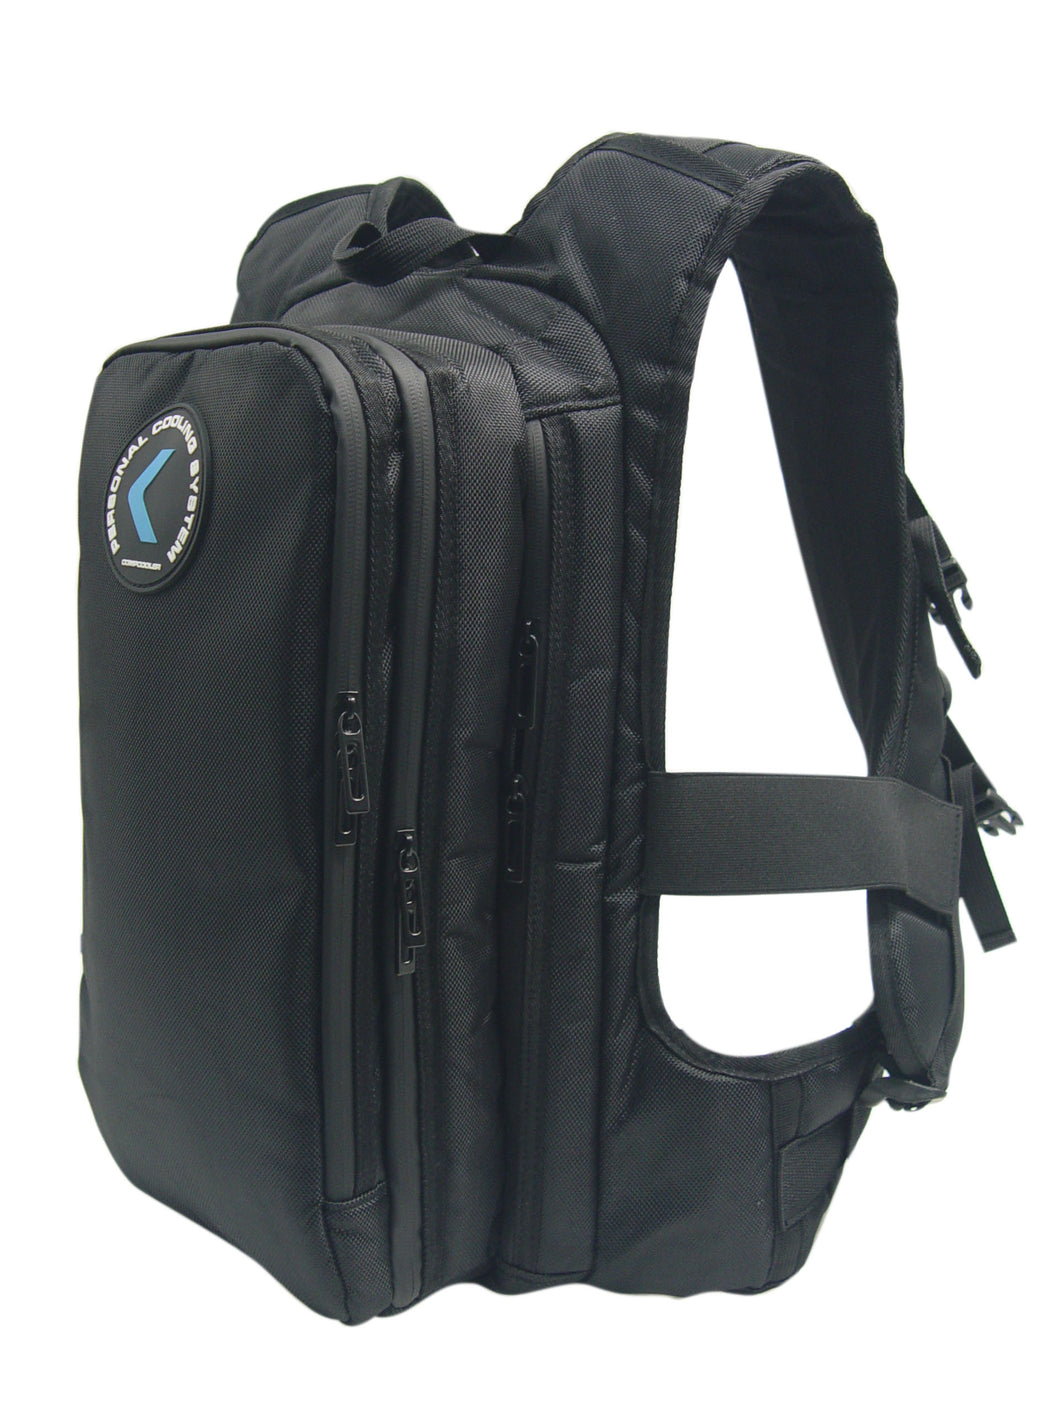 COMPCOOLER Cooling Backpack with internal cooling channel and double chambers 2.5L Hydration detachable Bladder